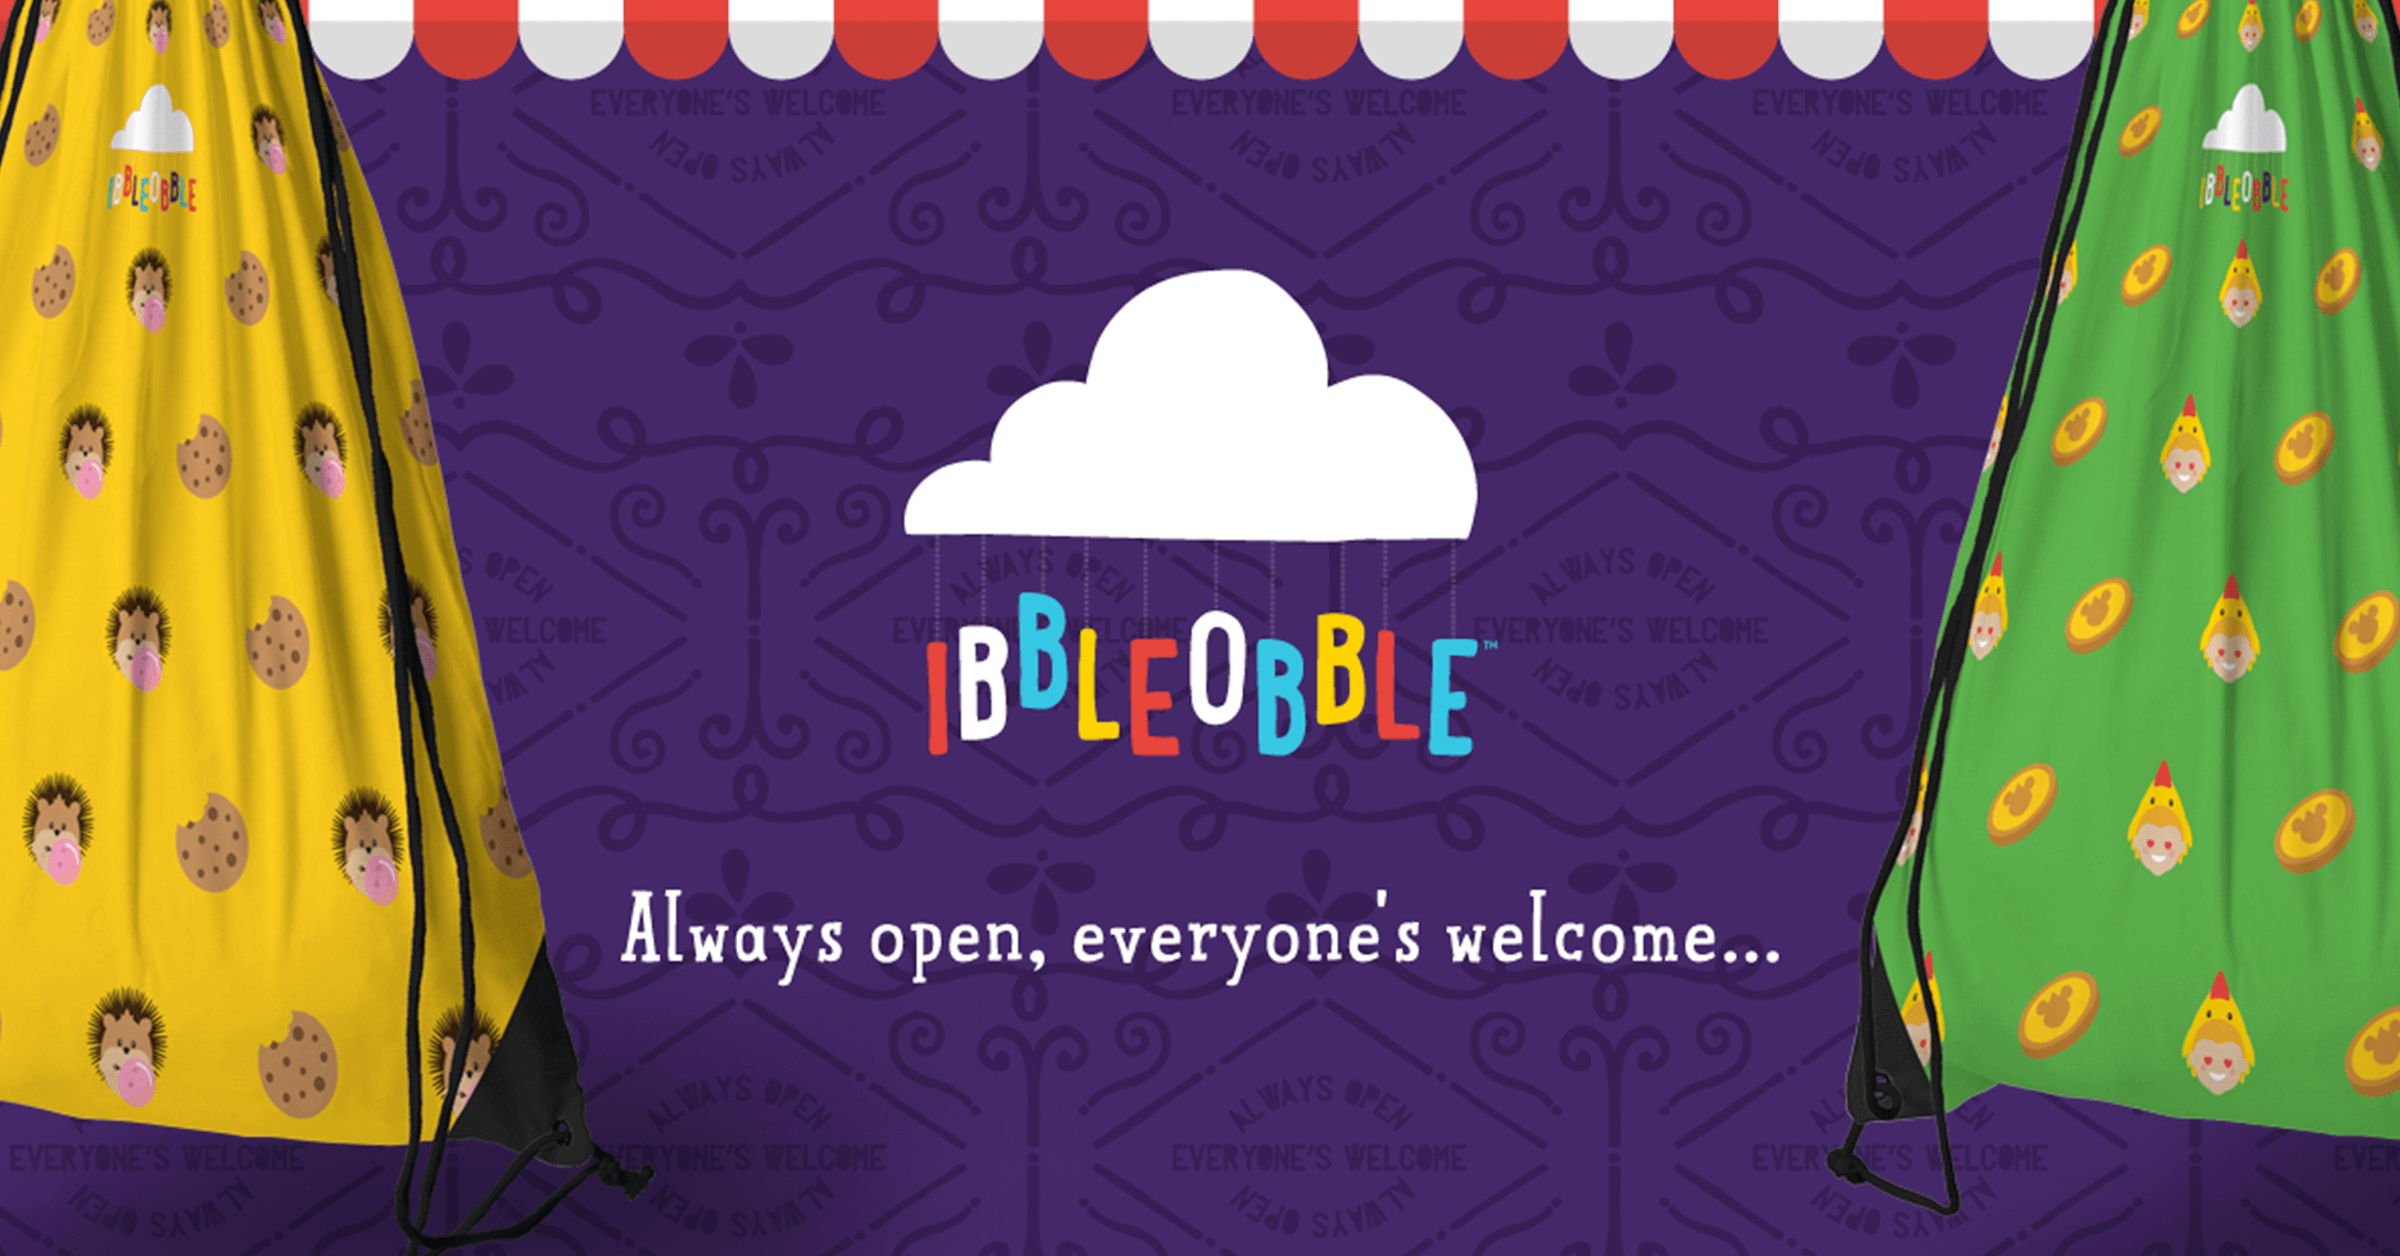 Shop 'til you drop! The Ibbleobble store is now open!